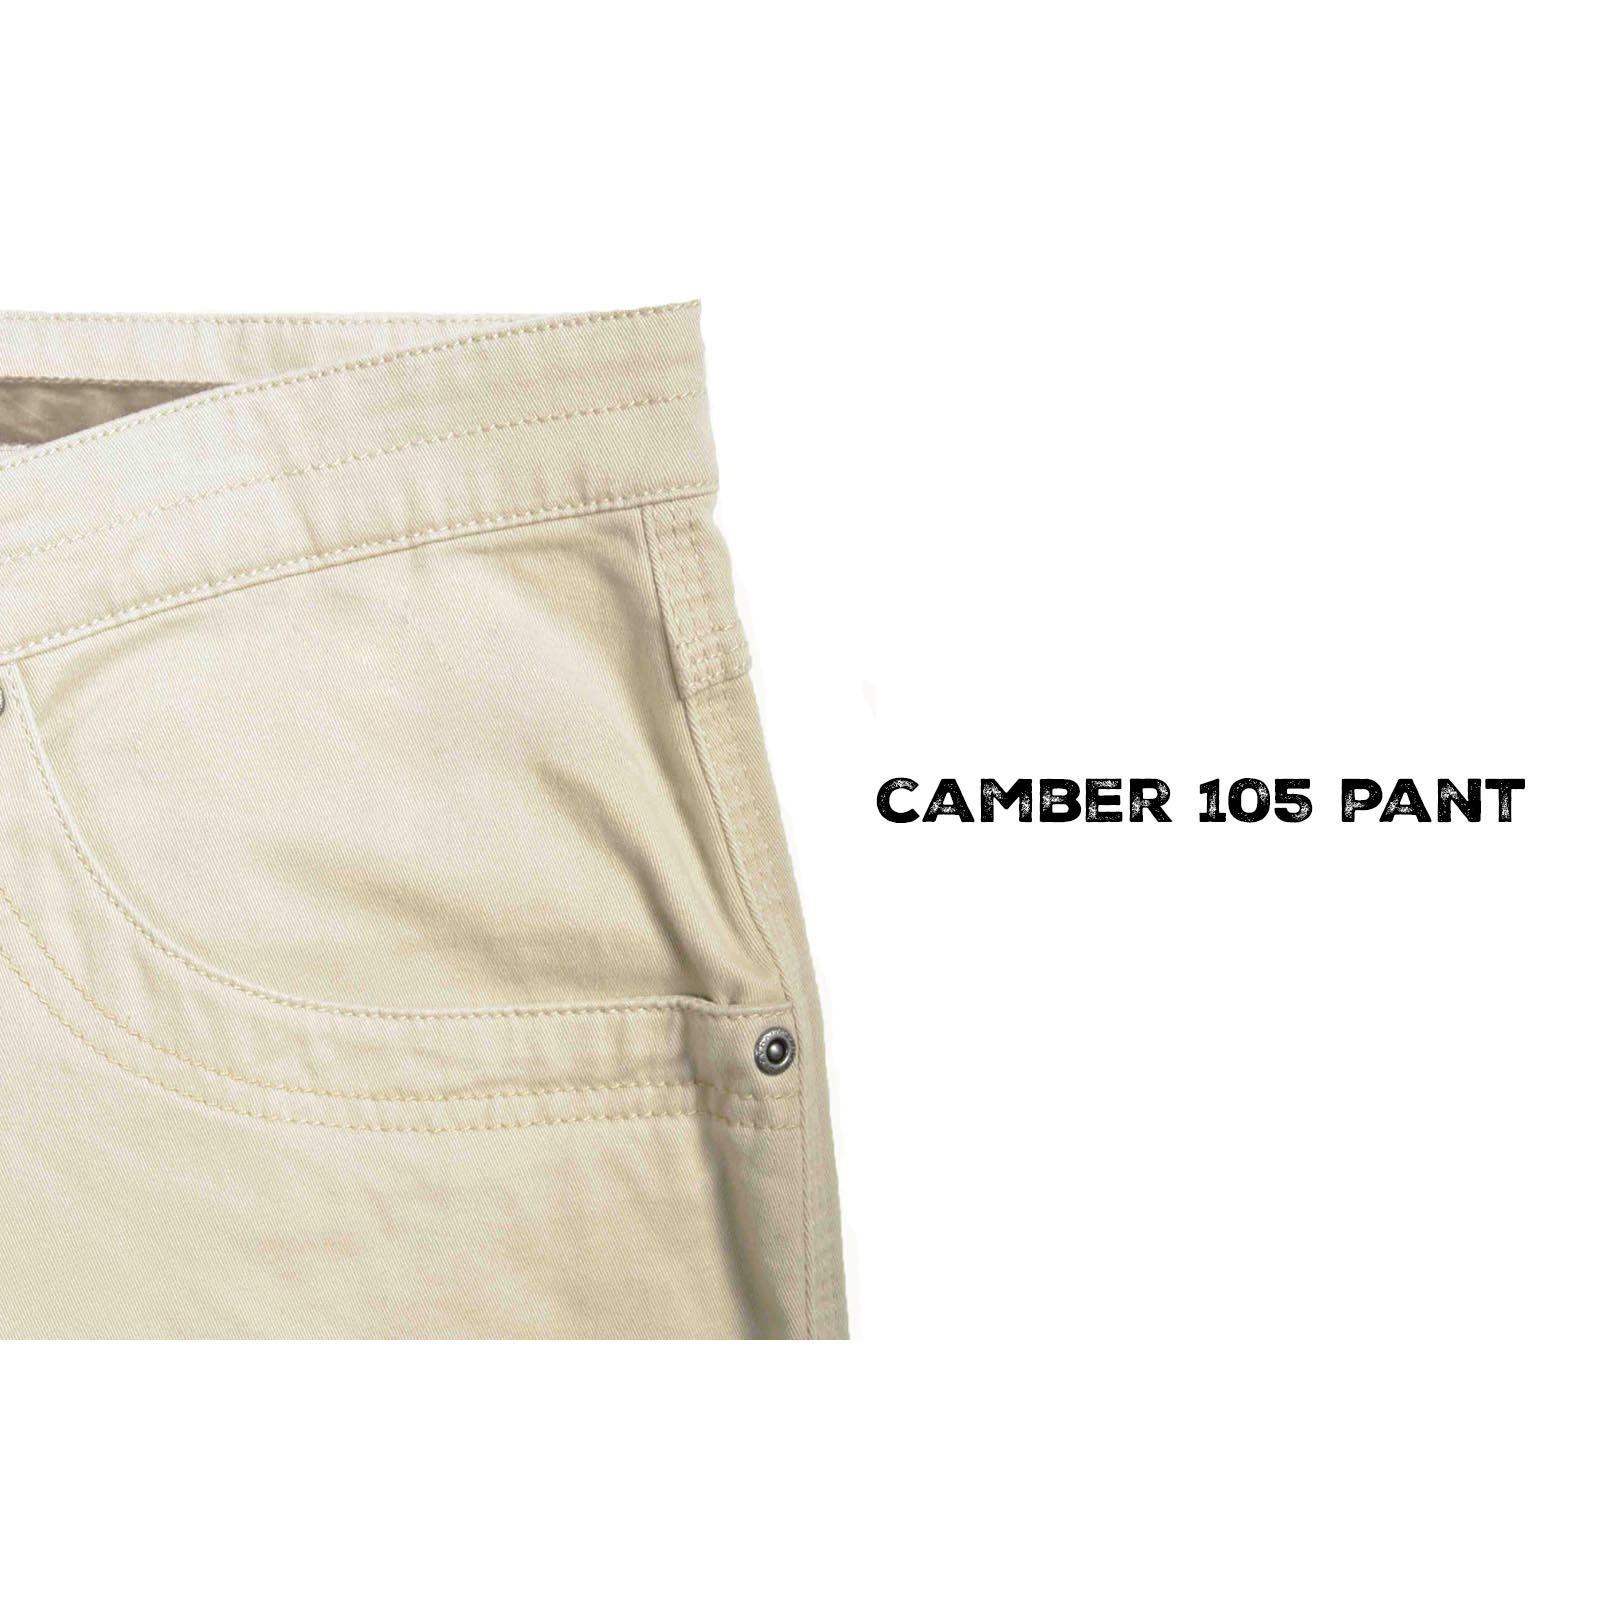 Camber 105 Detail